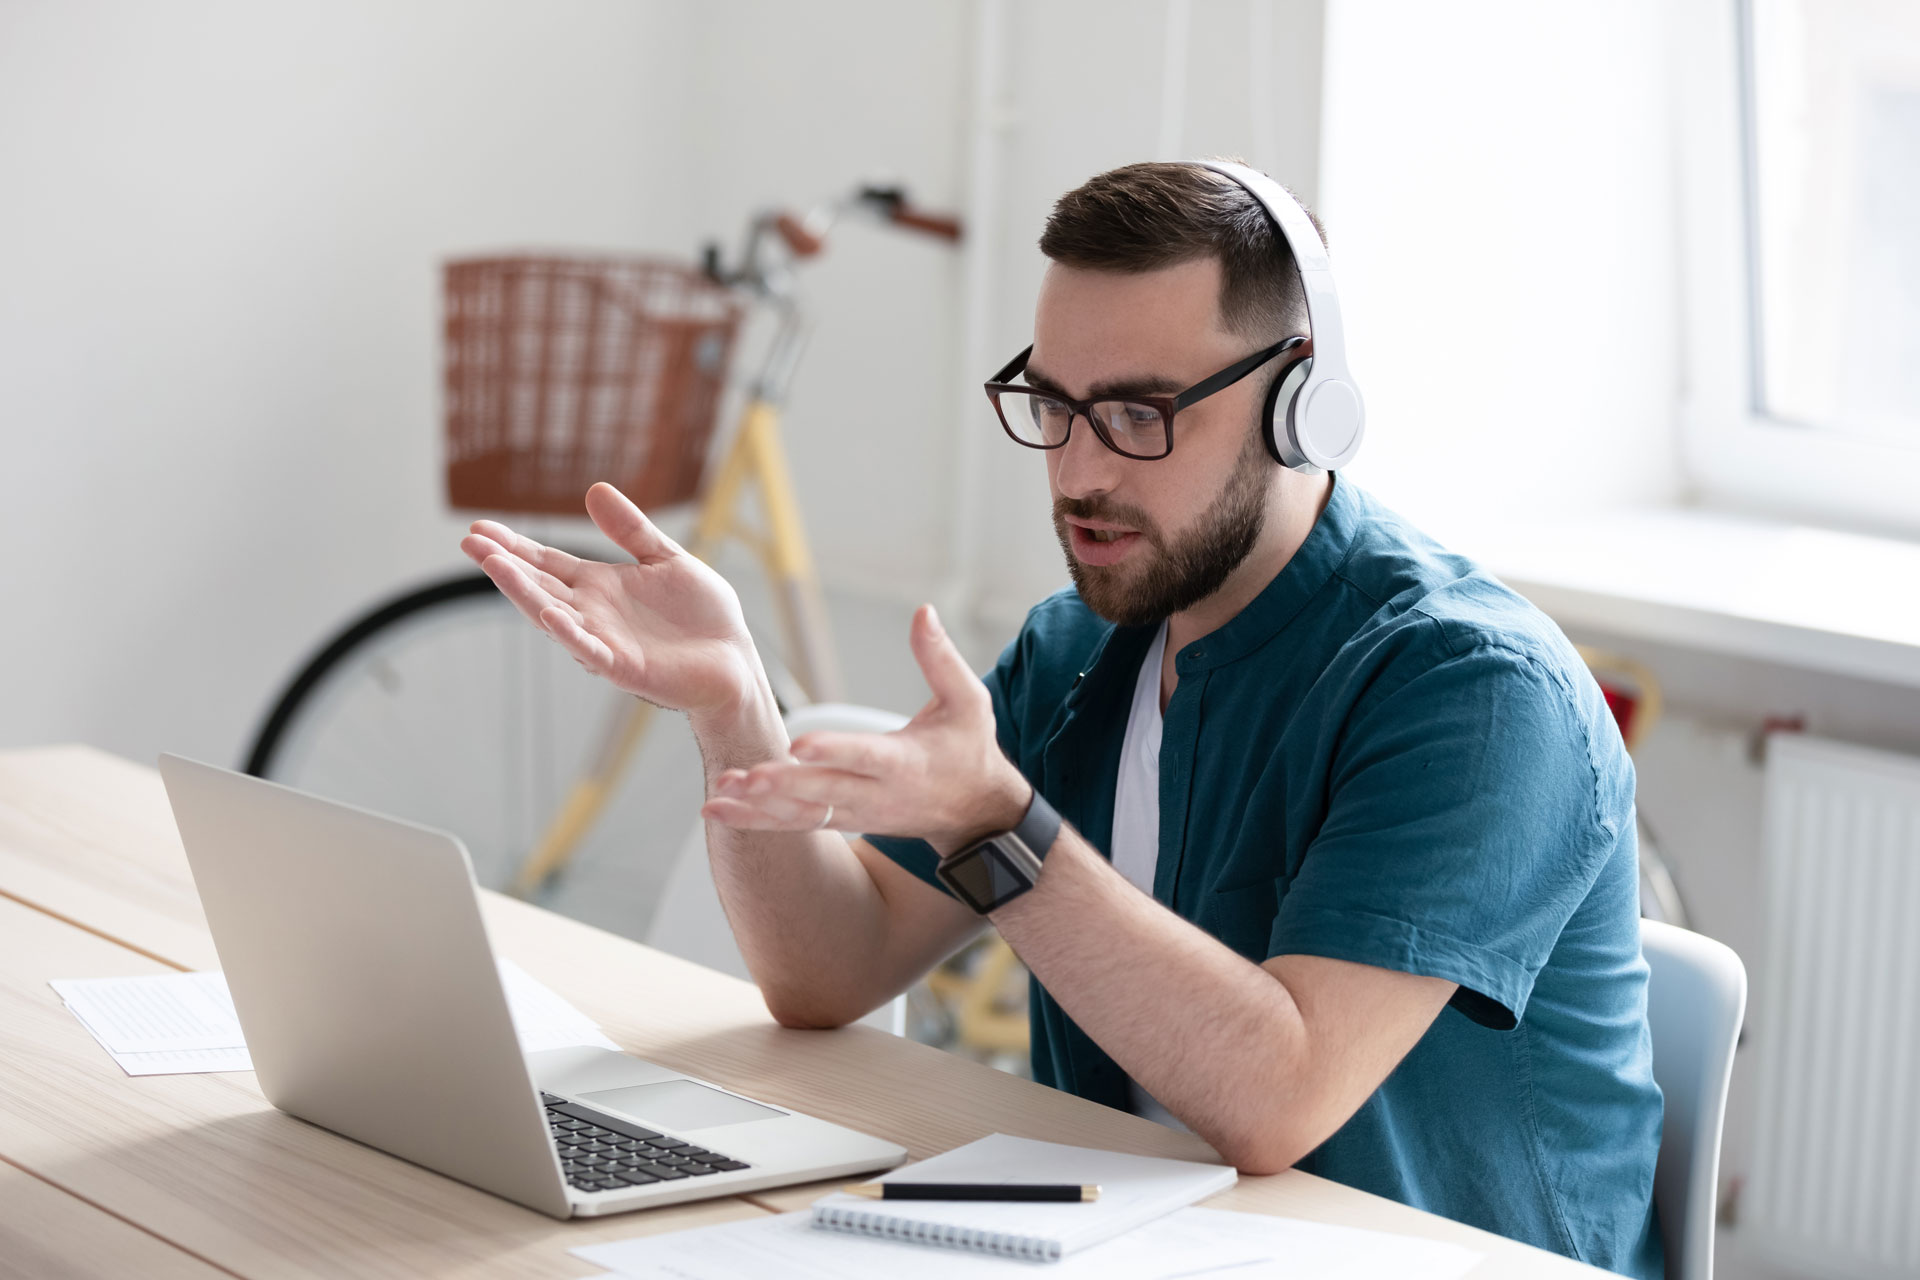 Man on video call with laptop at home